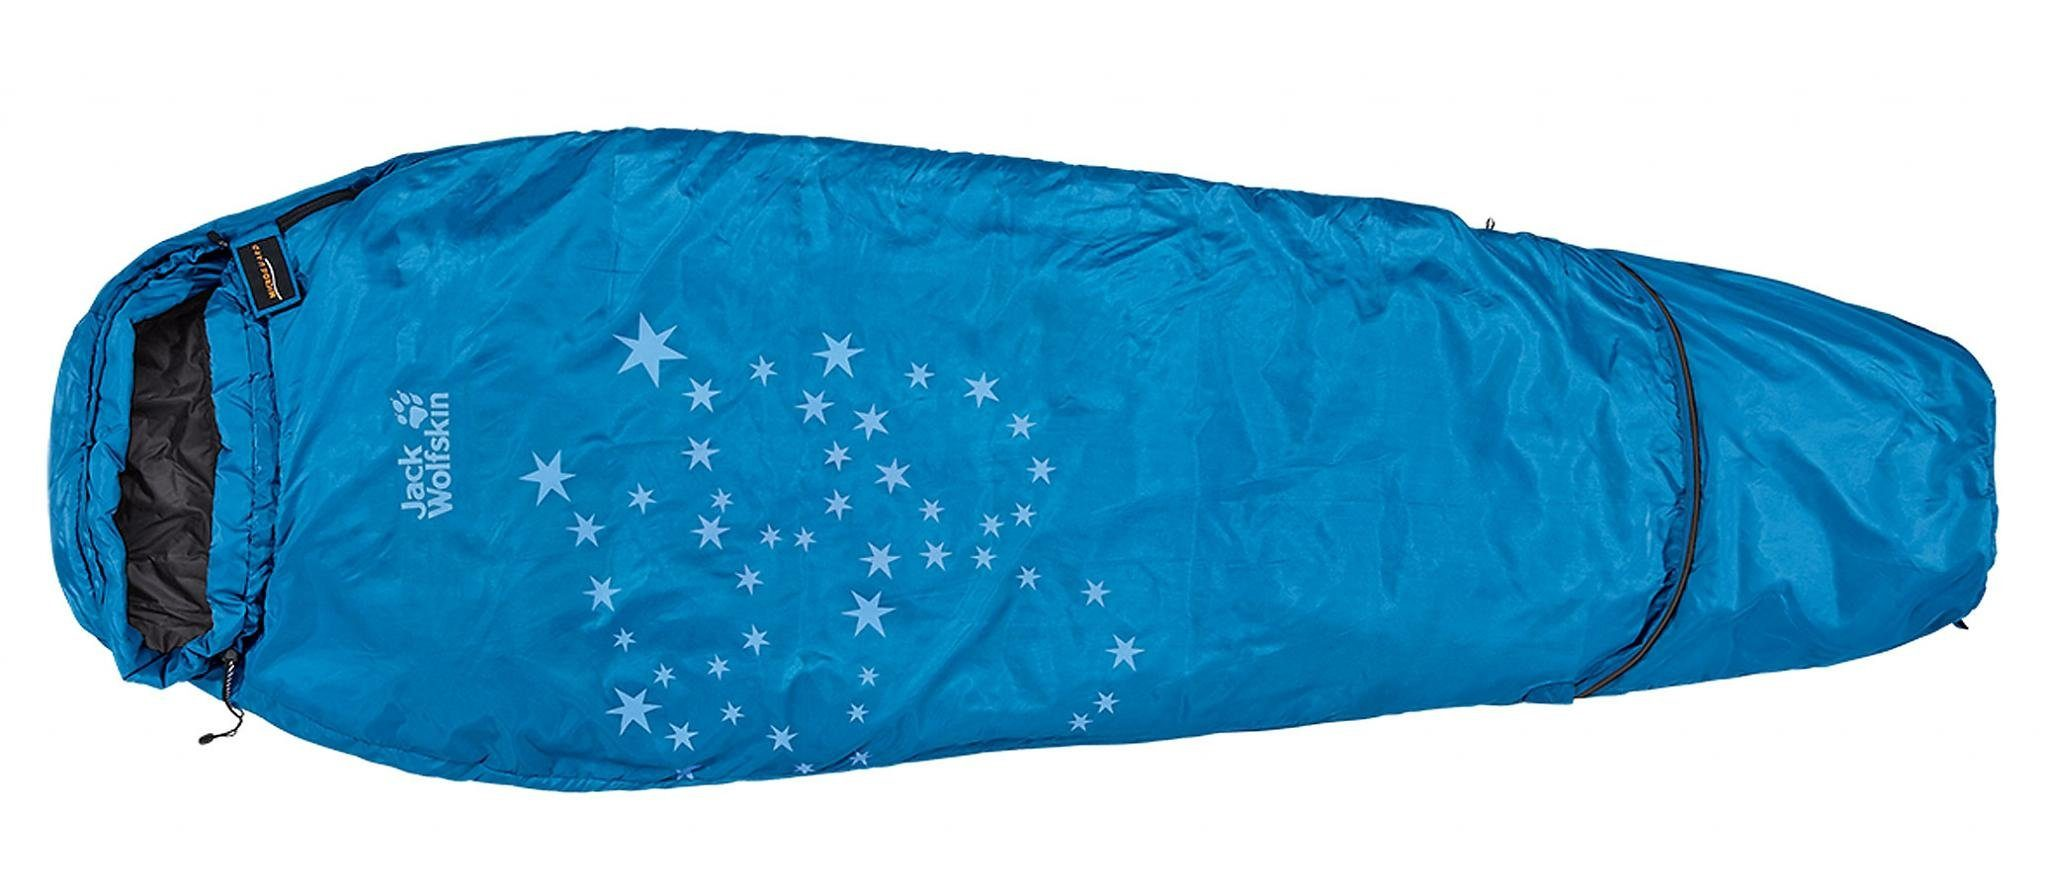 Jack Wolfskin Schlafsack »Grow Up Star Sleeping Bag electric blue«